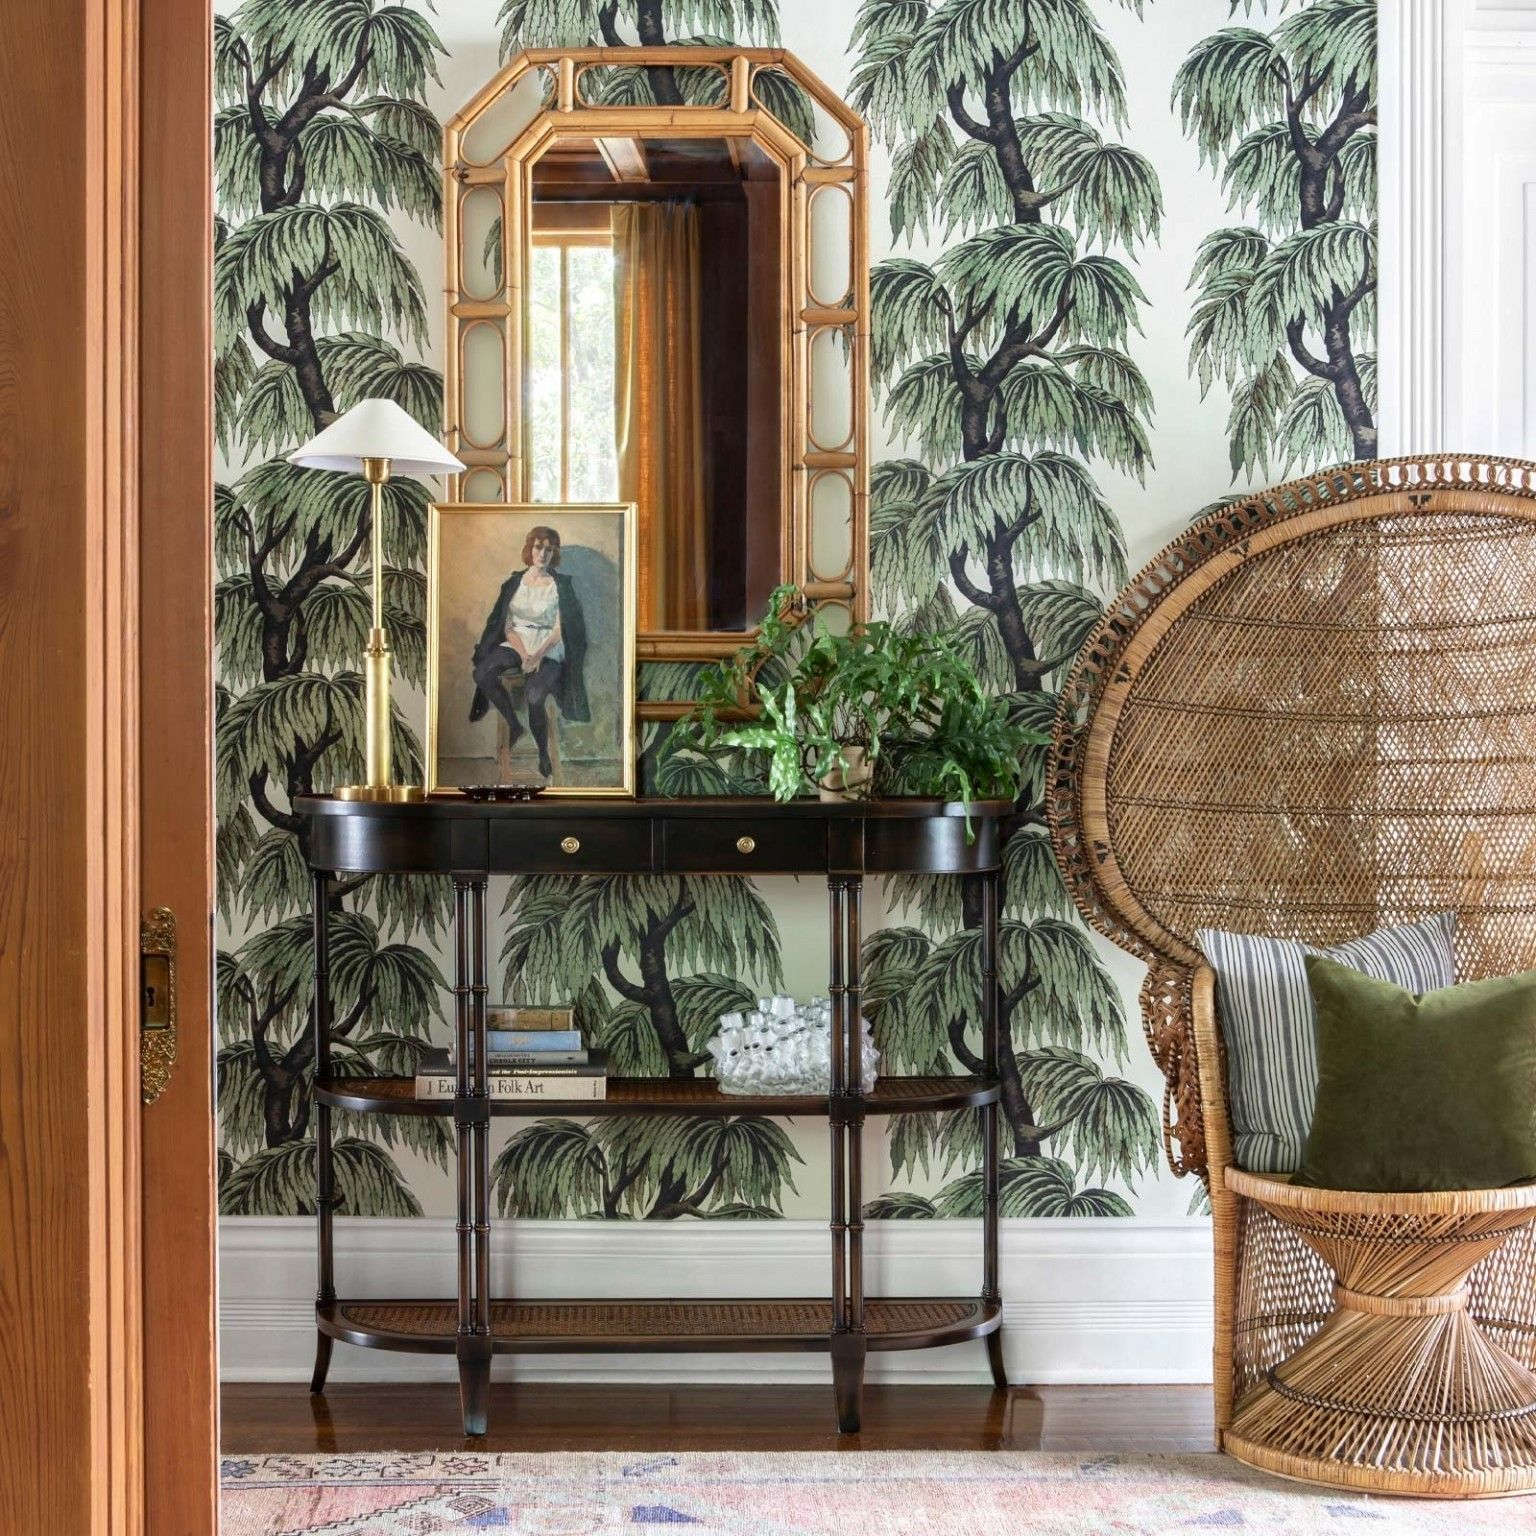 BABYLON Wallpaper Papyrus / Willow in 2020 House of